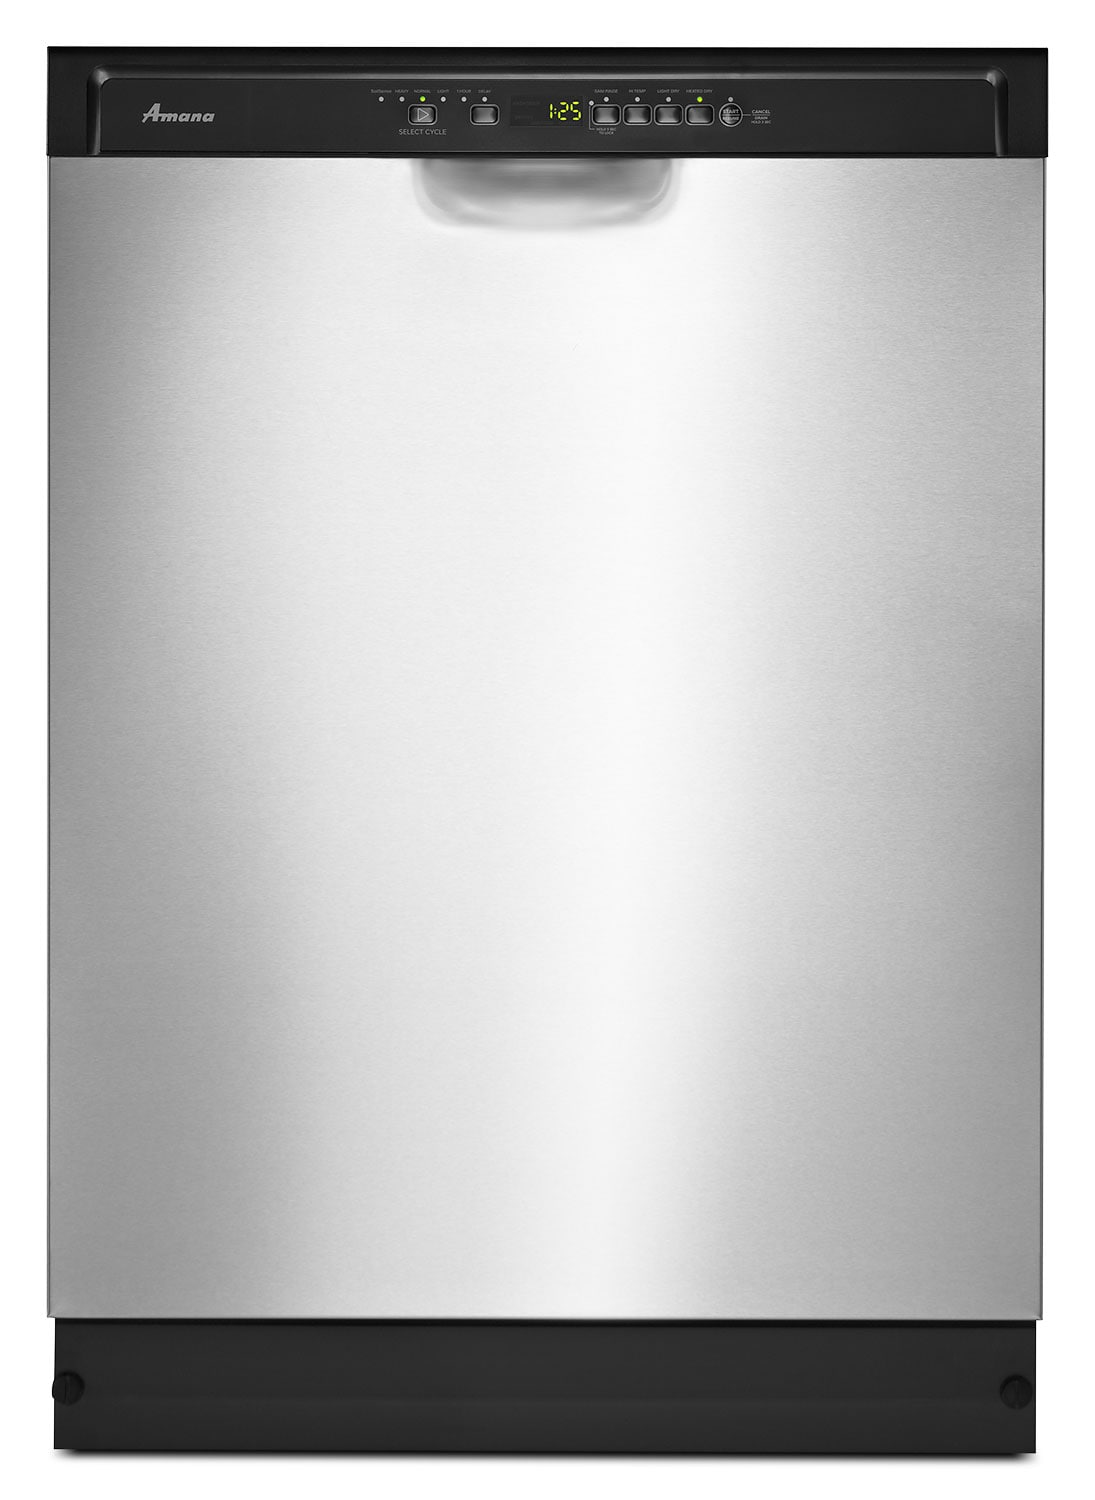 "Amana 24"" Stainless Steel Dishwasher - ADB1700ADS"